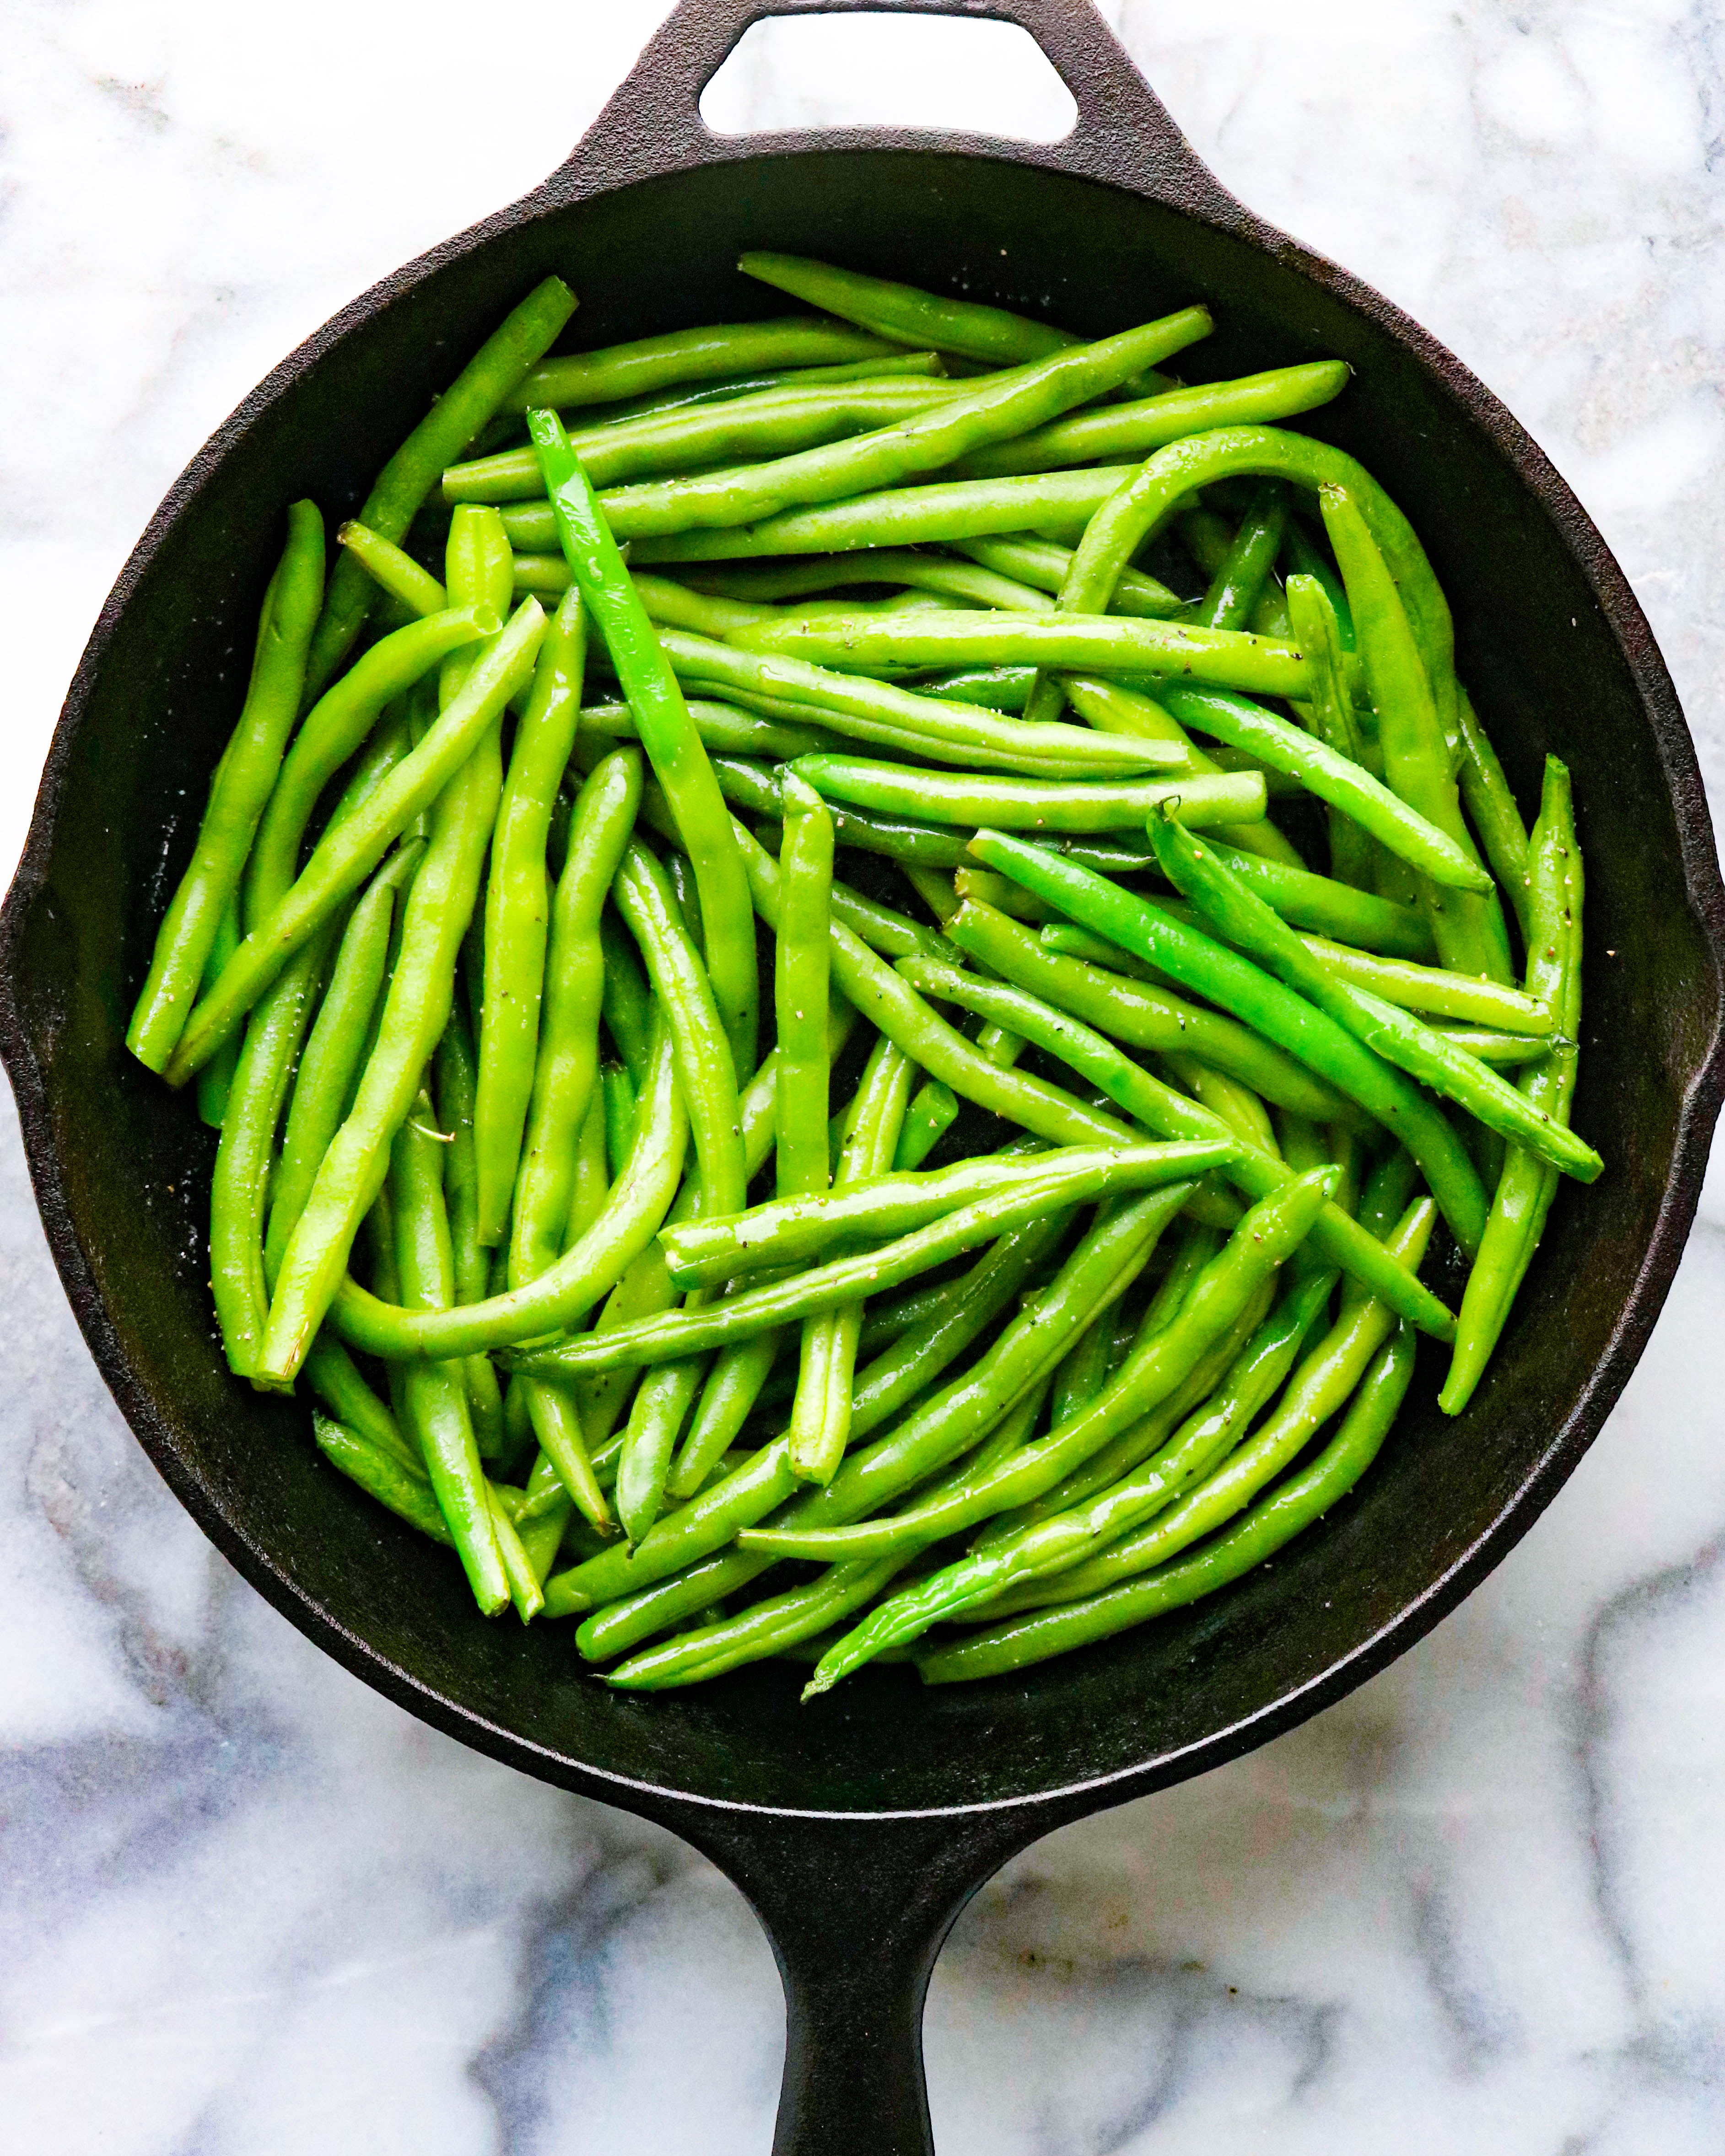 Green beans in a acast iron pan